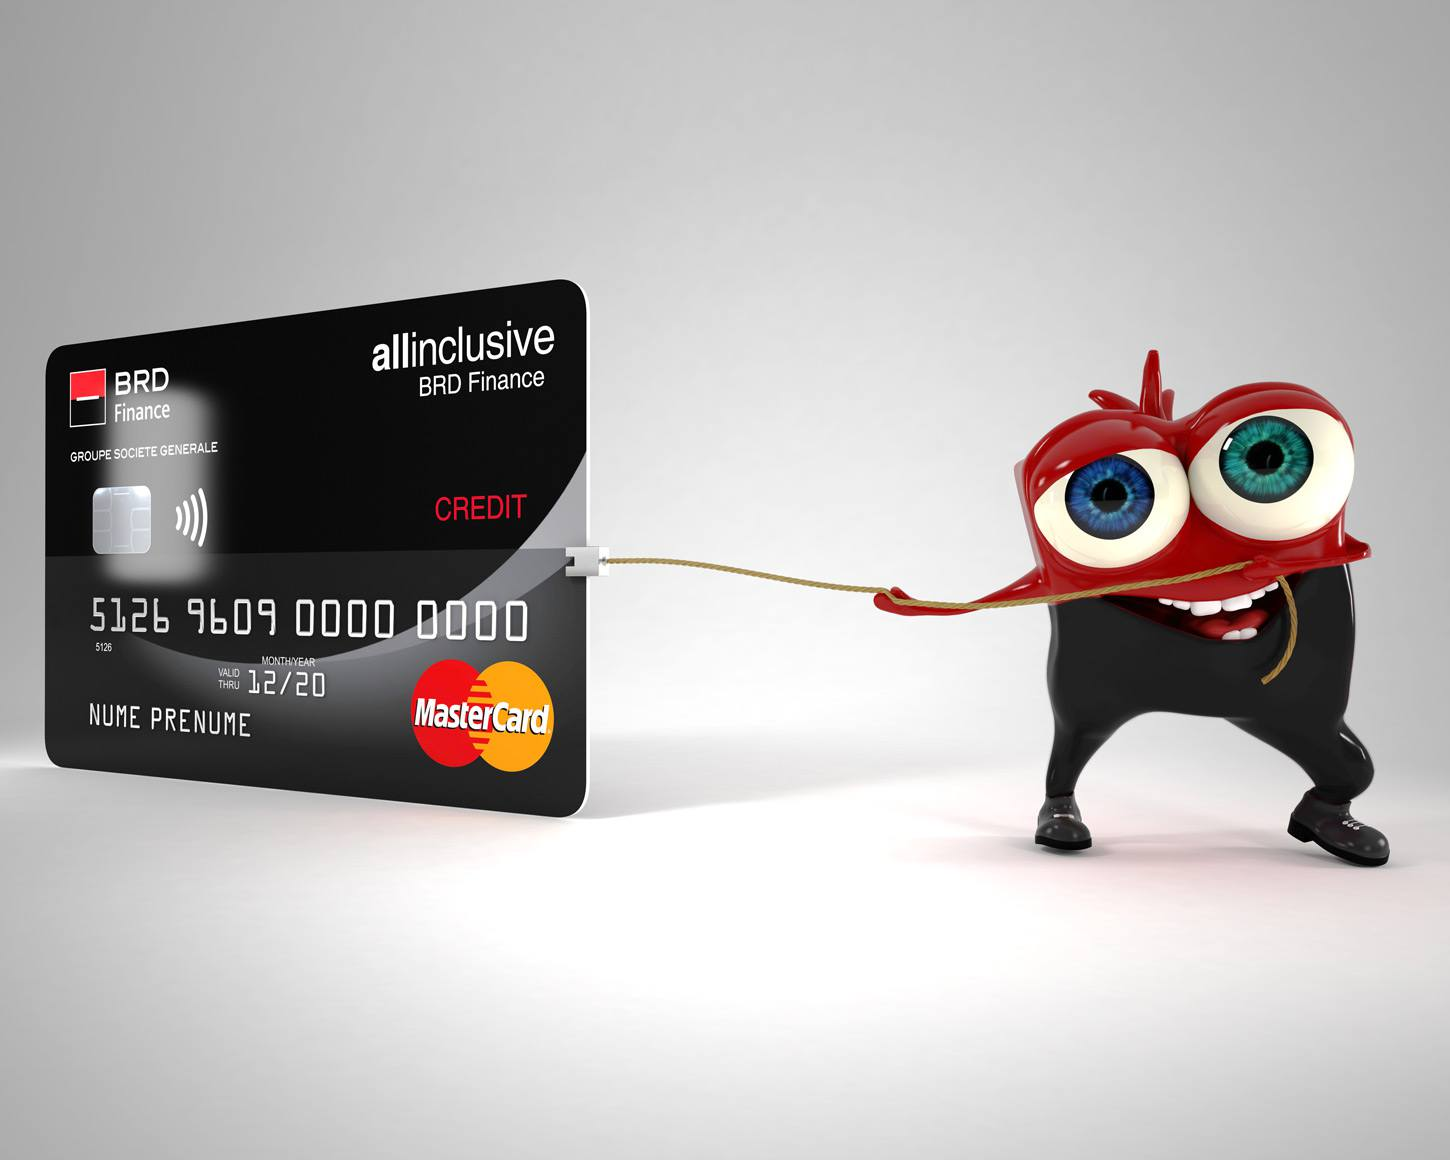 Campanie mascota BRD Finance -AllInclusive